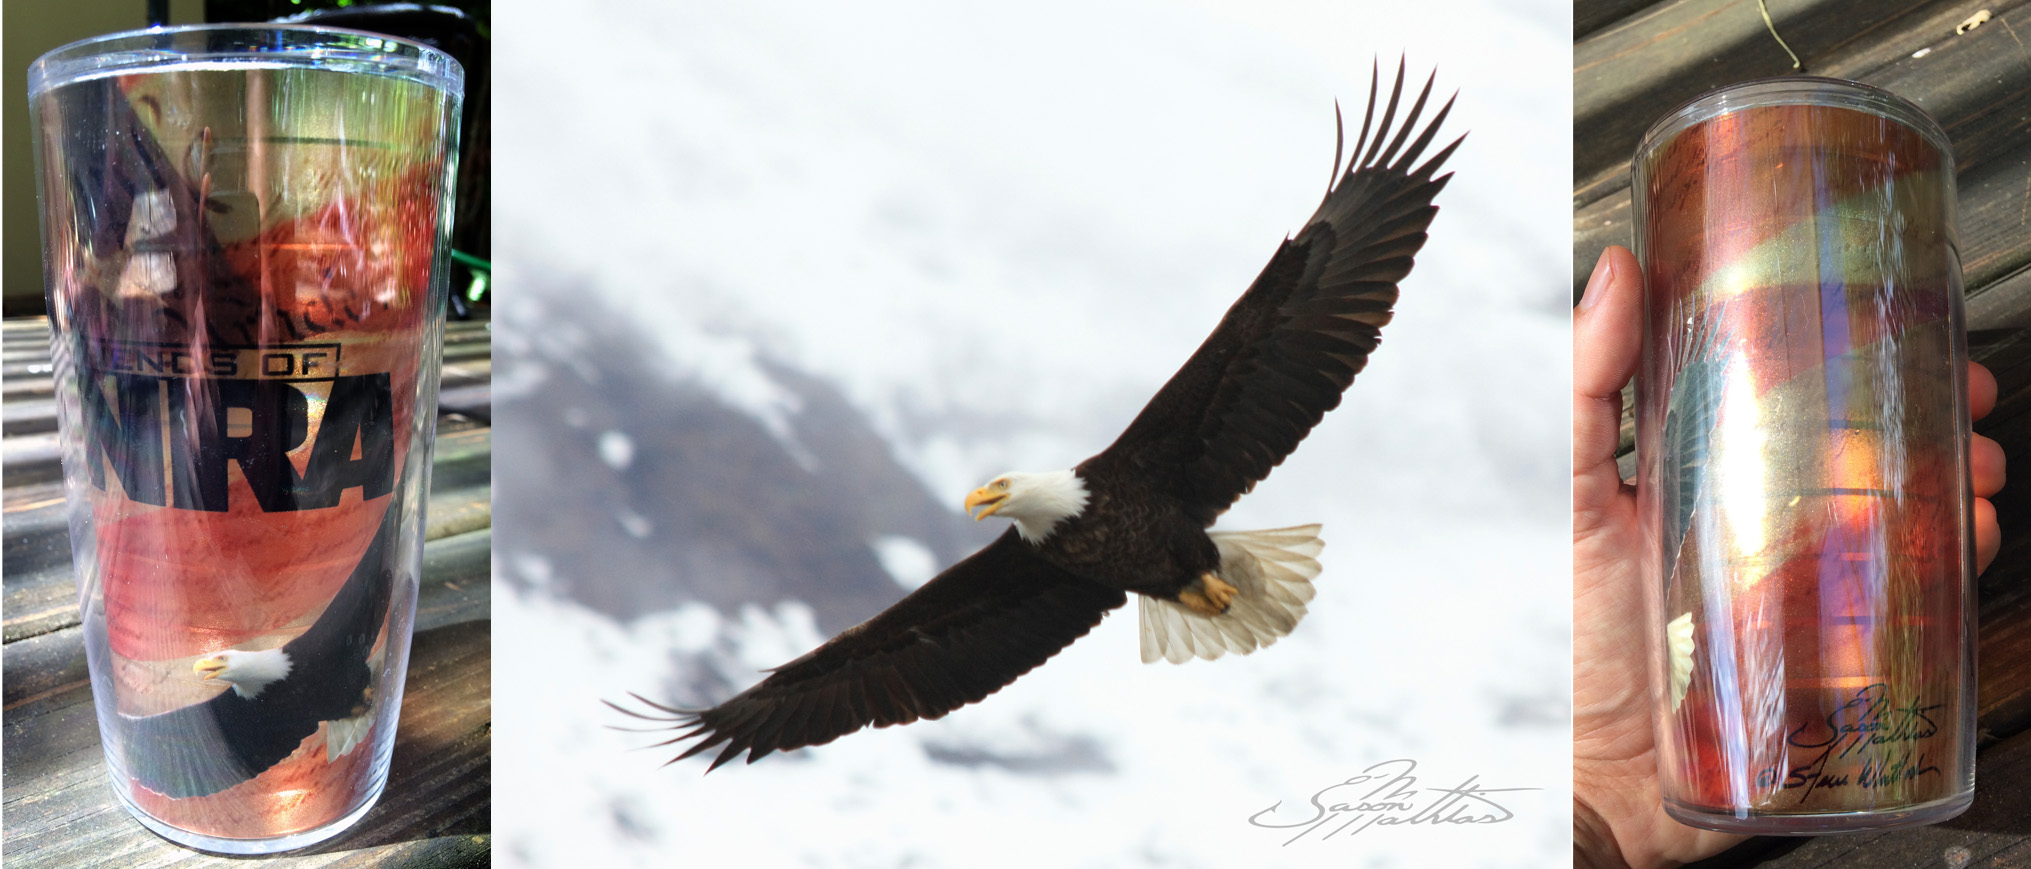 jason-mathias-eagle-photography-nra.jpg